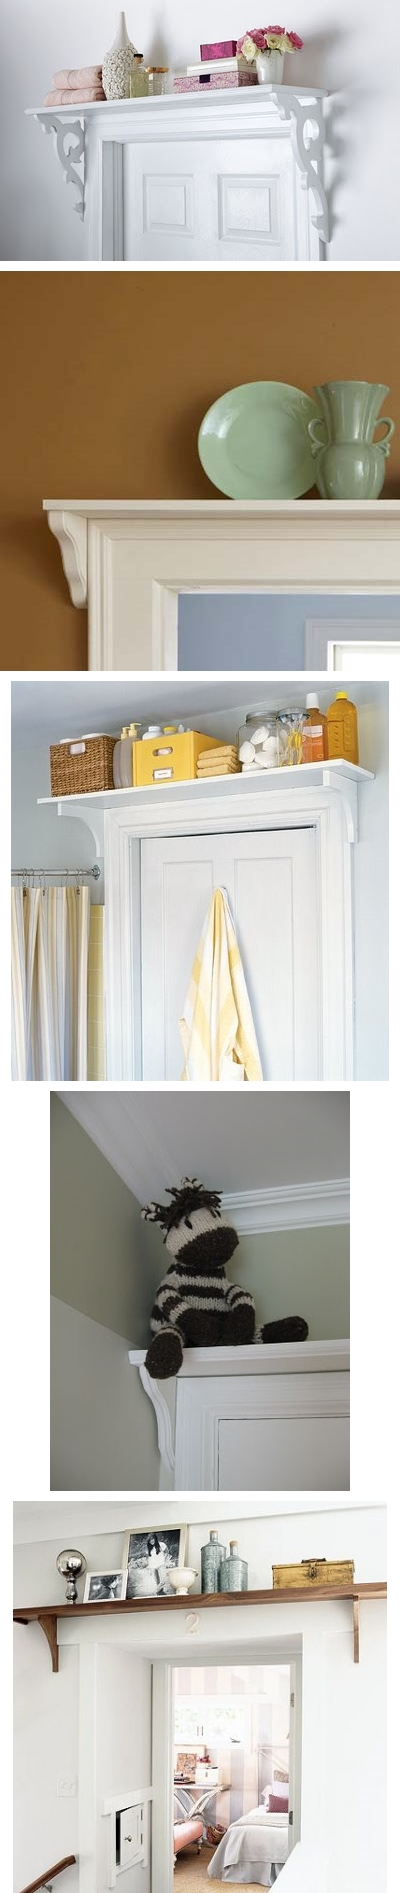 How to make doorway storage shelf step by step DIY tutorial instructions